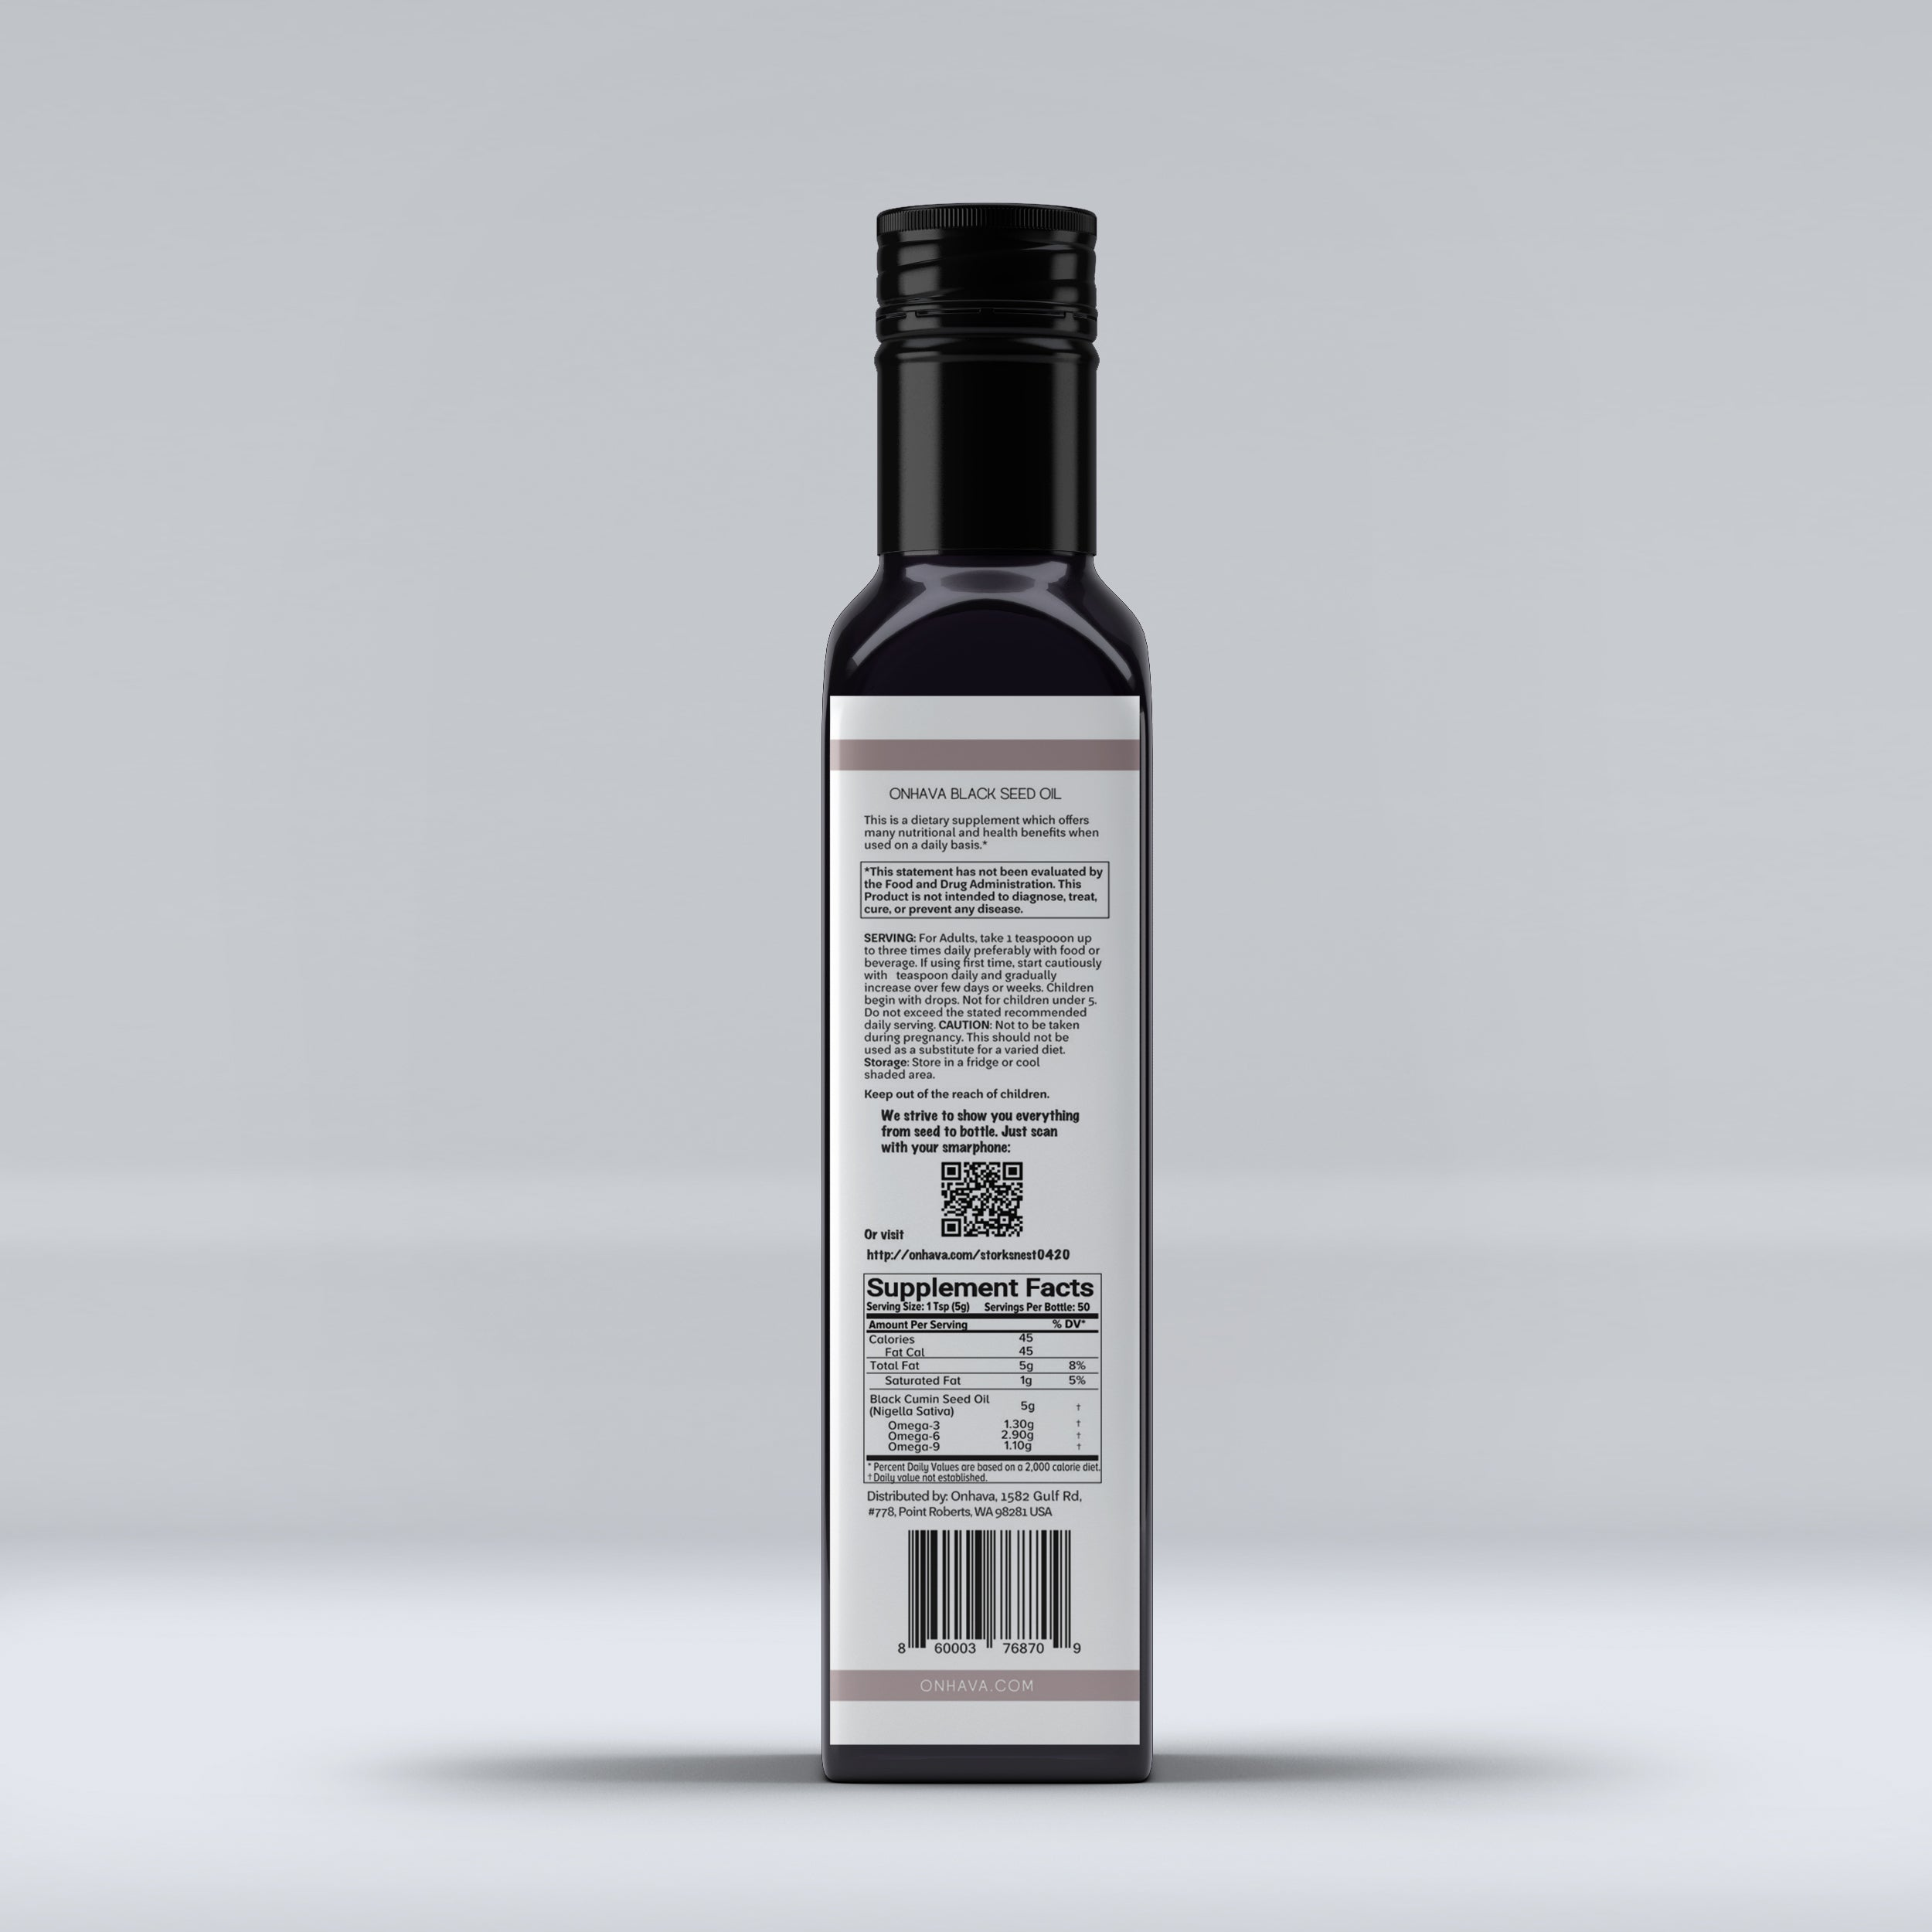 Black Seed Oil From Cold-Pressed Nigella Sativa Seeds with batch reports attesting its purity and potency. 8 oz  250 ml